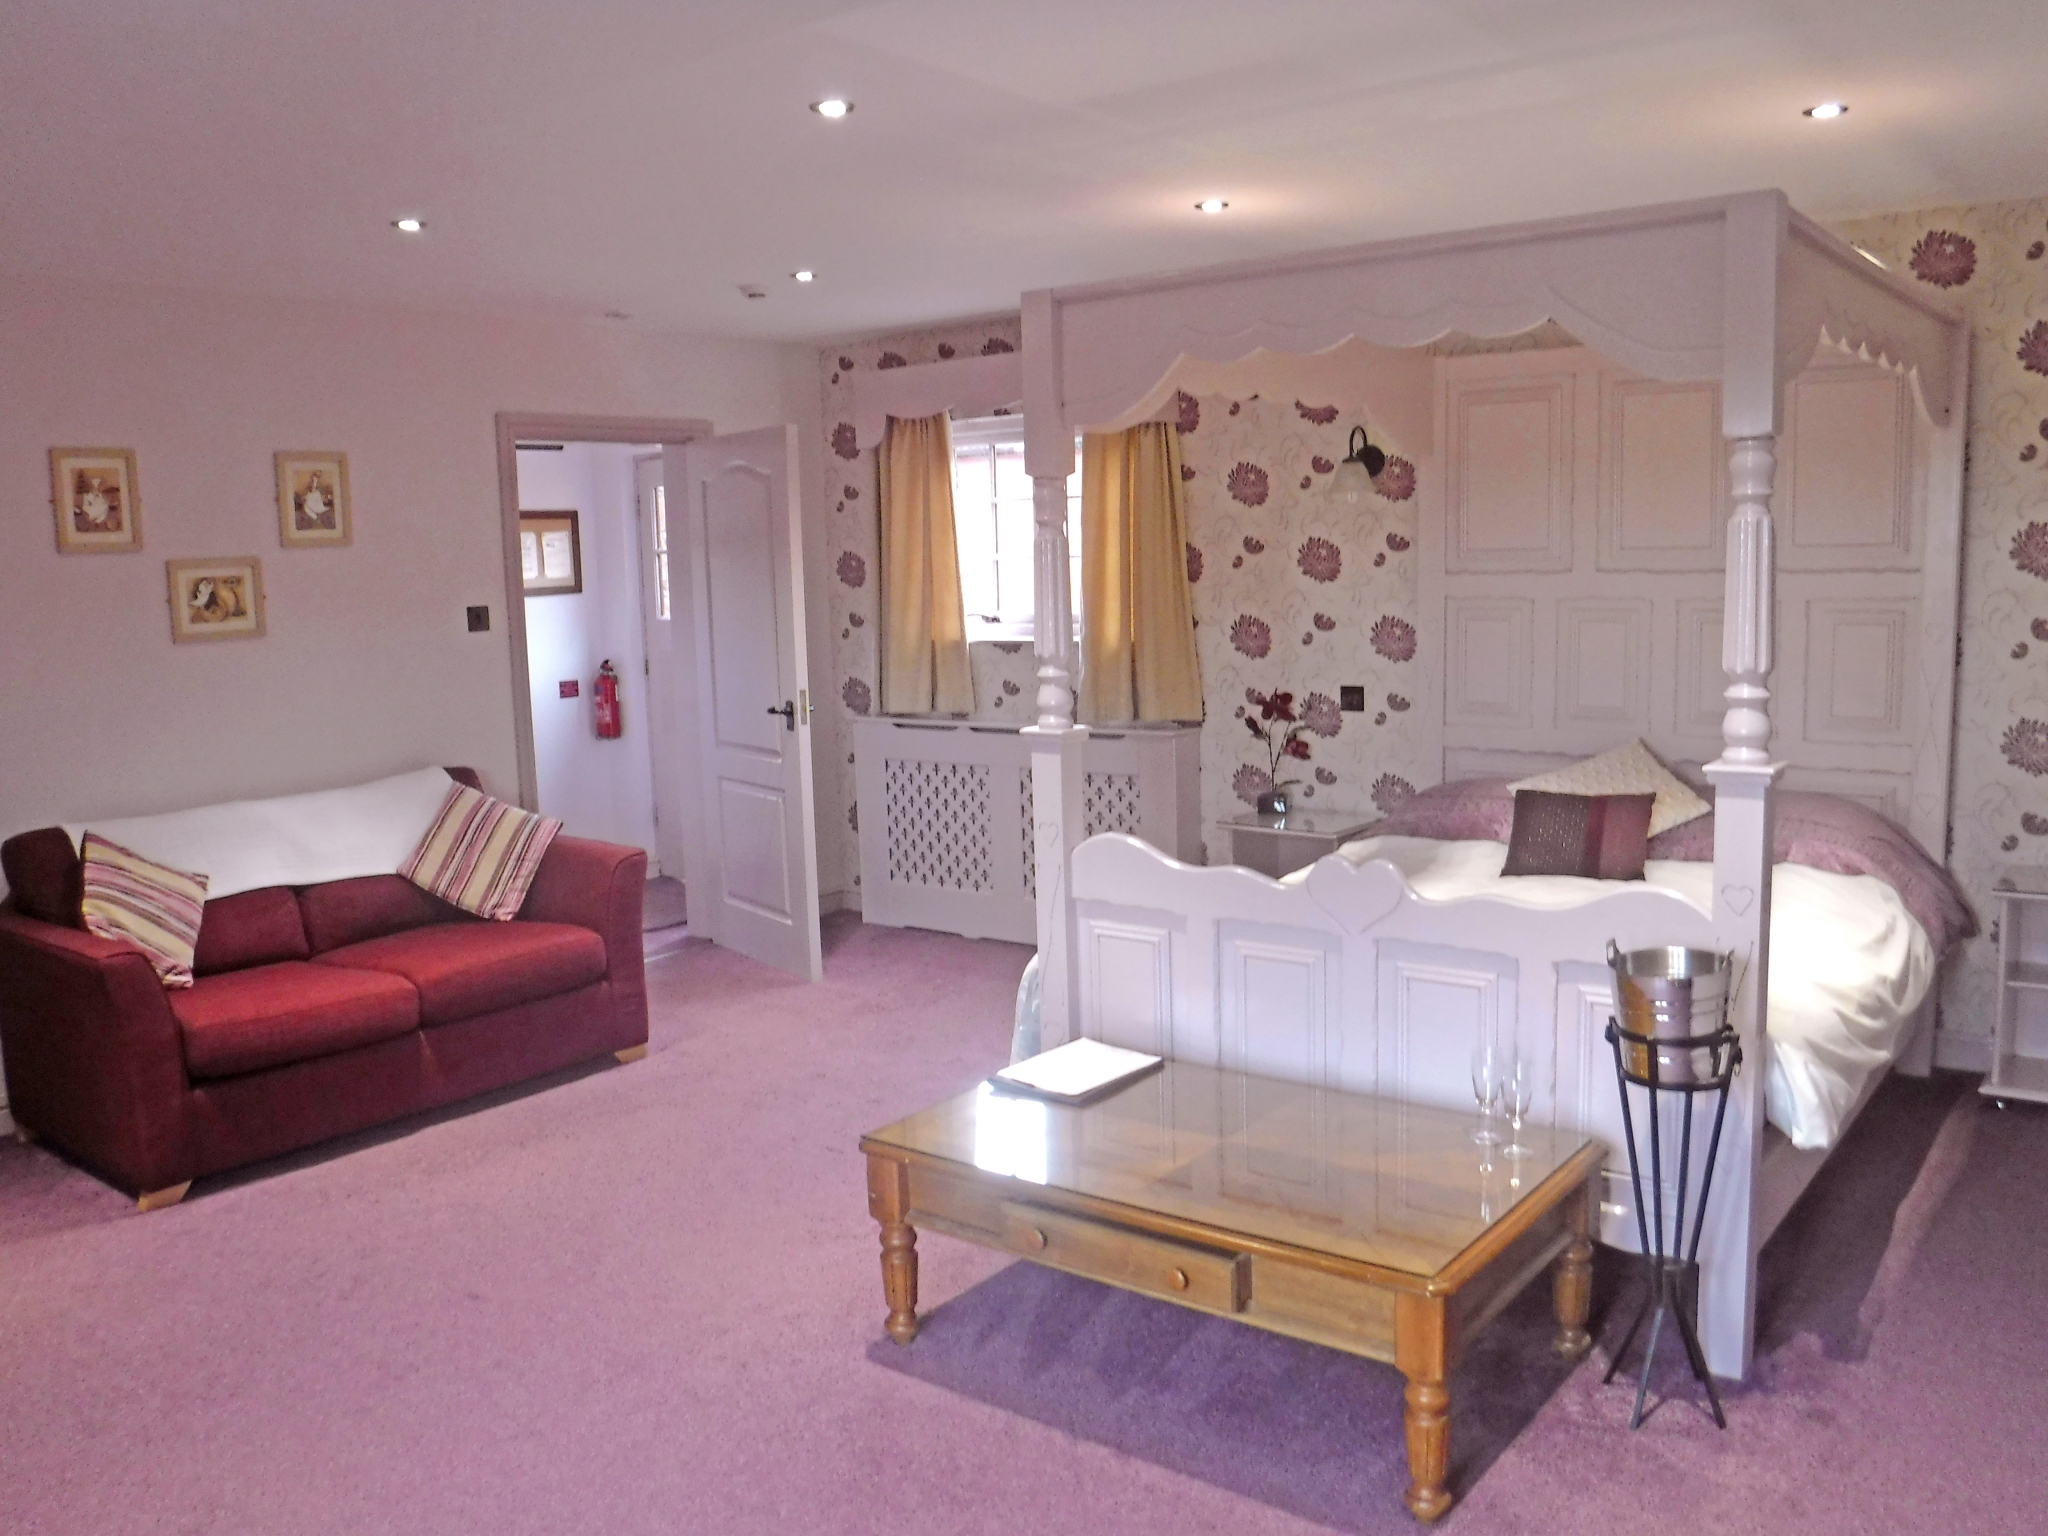 Accommodation at The Mill Forge Hotel near Gretna Green